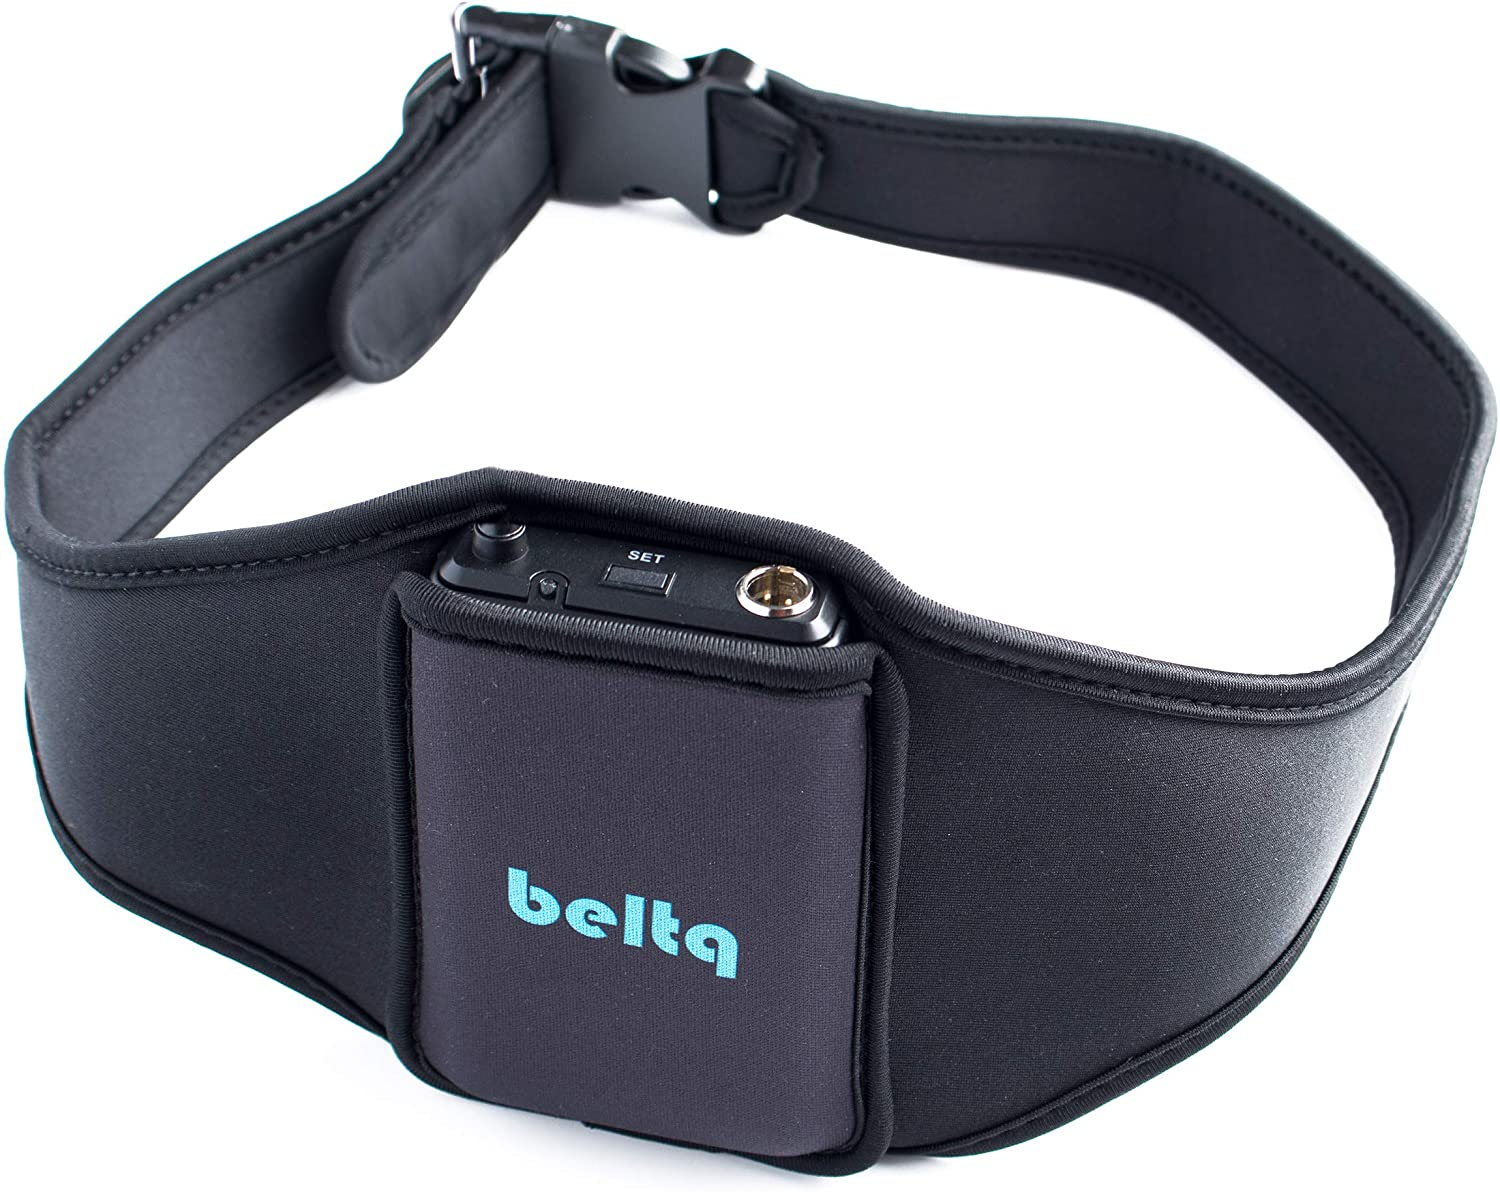 Microphone Belt Mic by Beltq Carrier Black Belts for 40% OFF Cheap free shipping Sale Microp